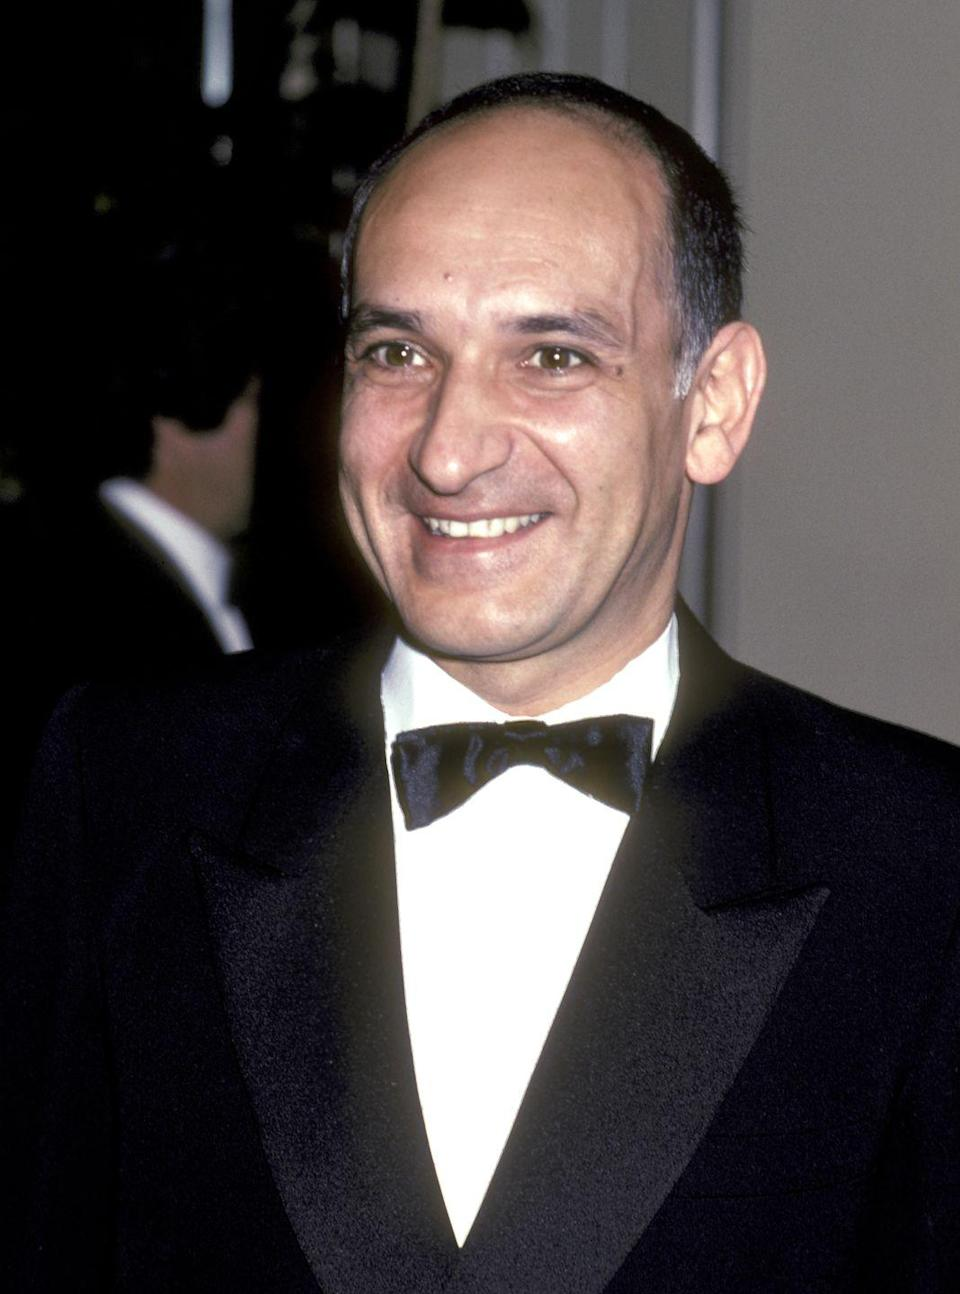 <p>Ben Kingsley was working with quite a bit of hair when he starred in his Oscar winning role in <em>Gandhi. </em>Ironically, the role required him to shave his head. </p>